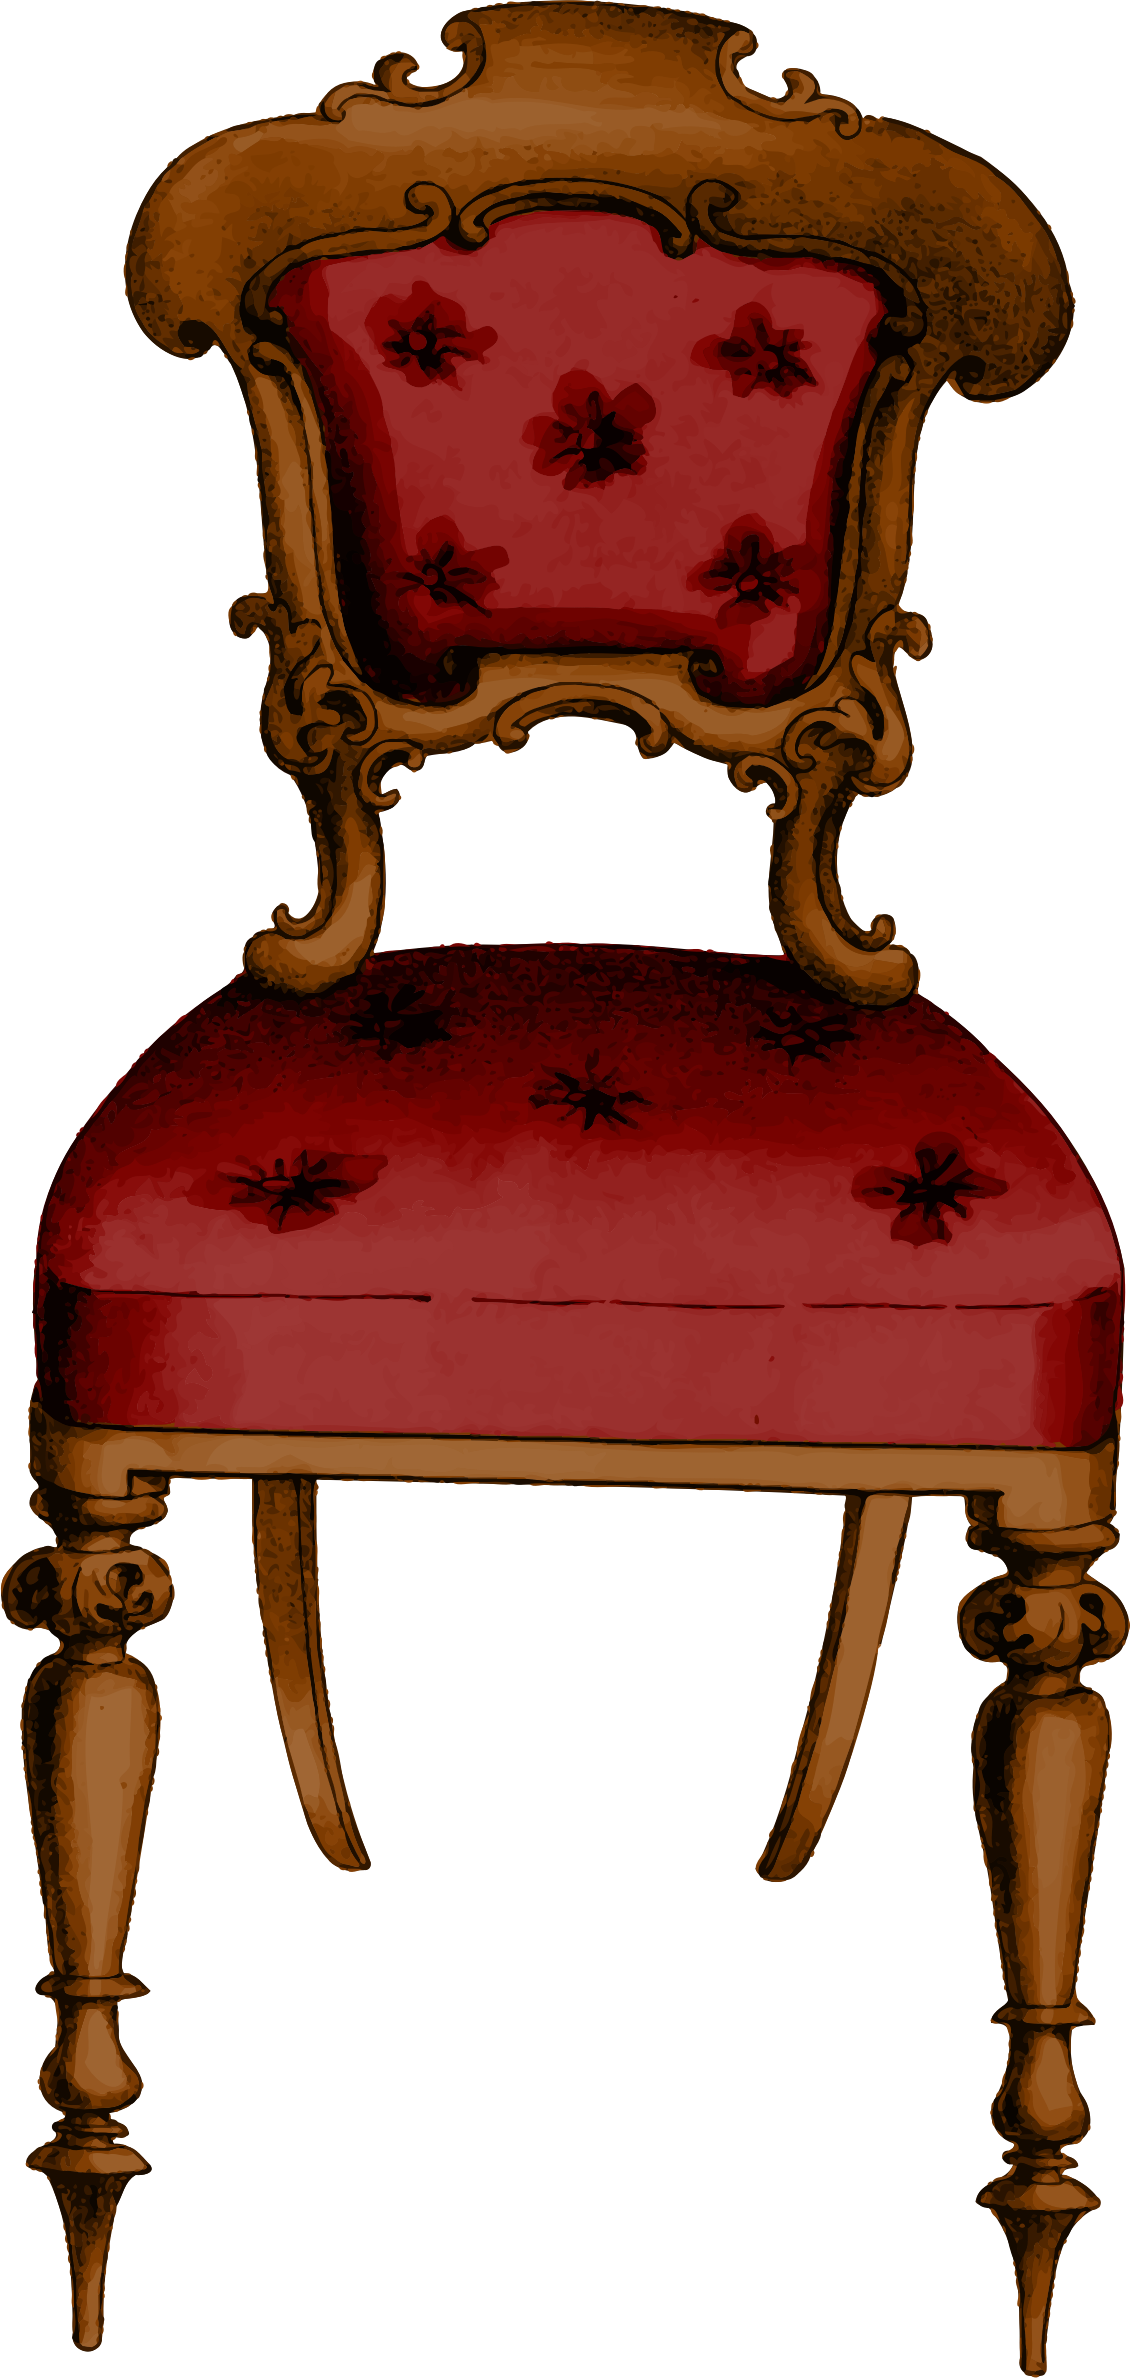 Chair by Firkin